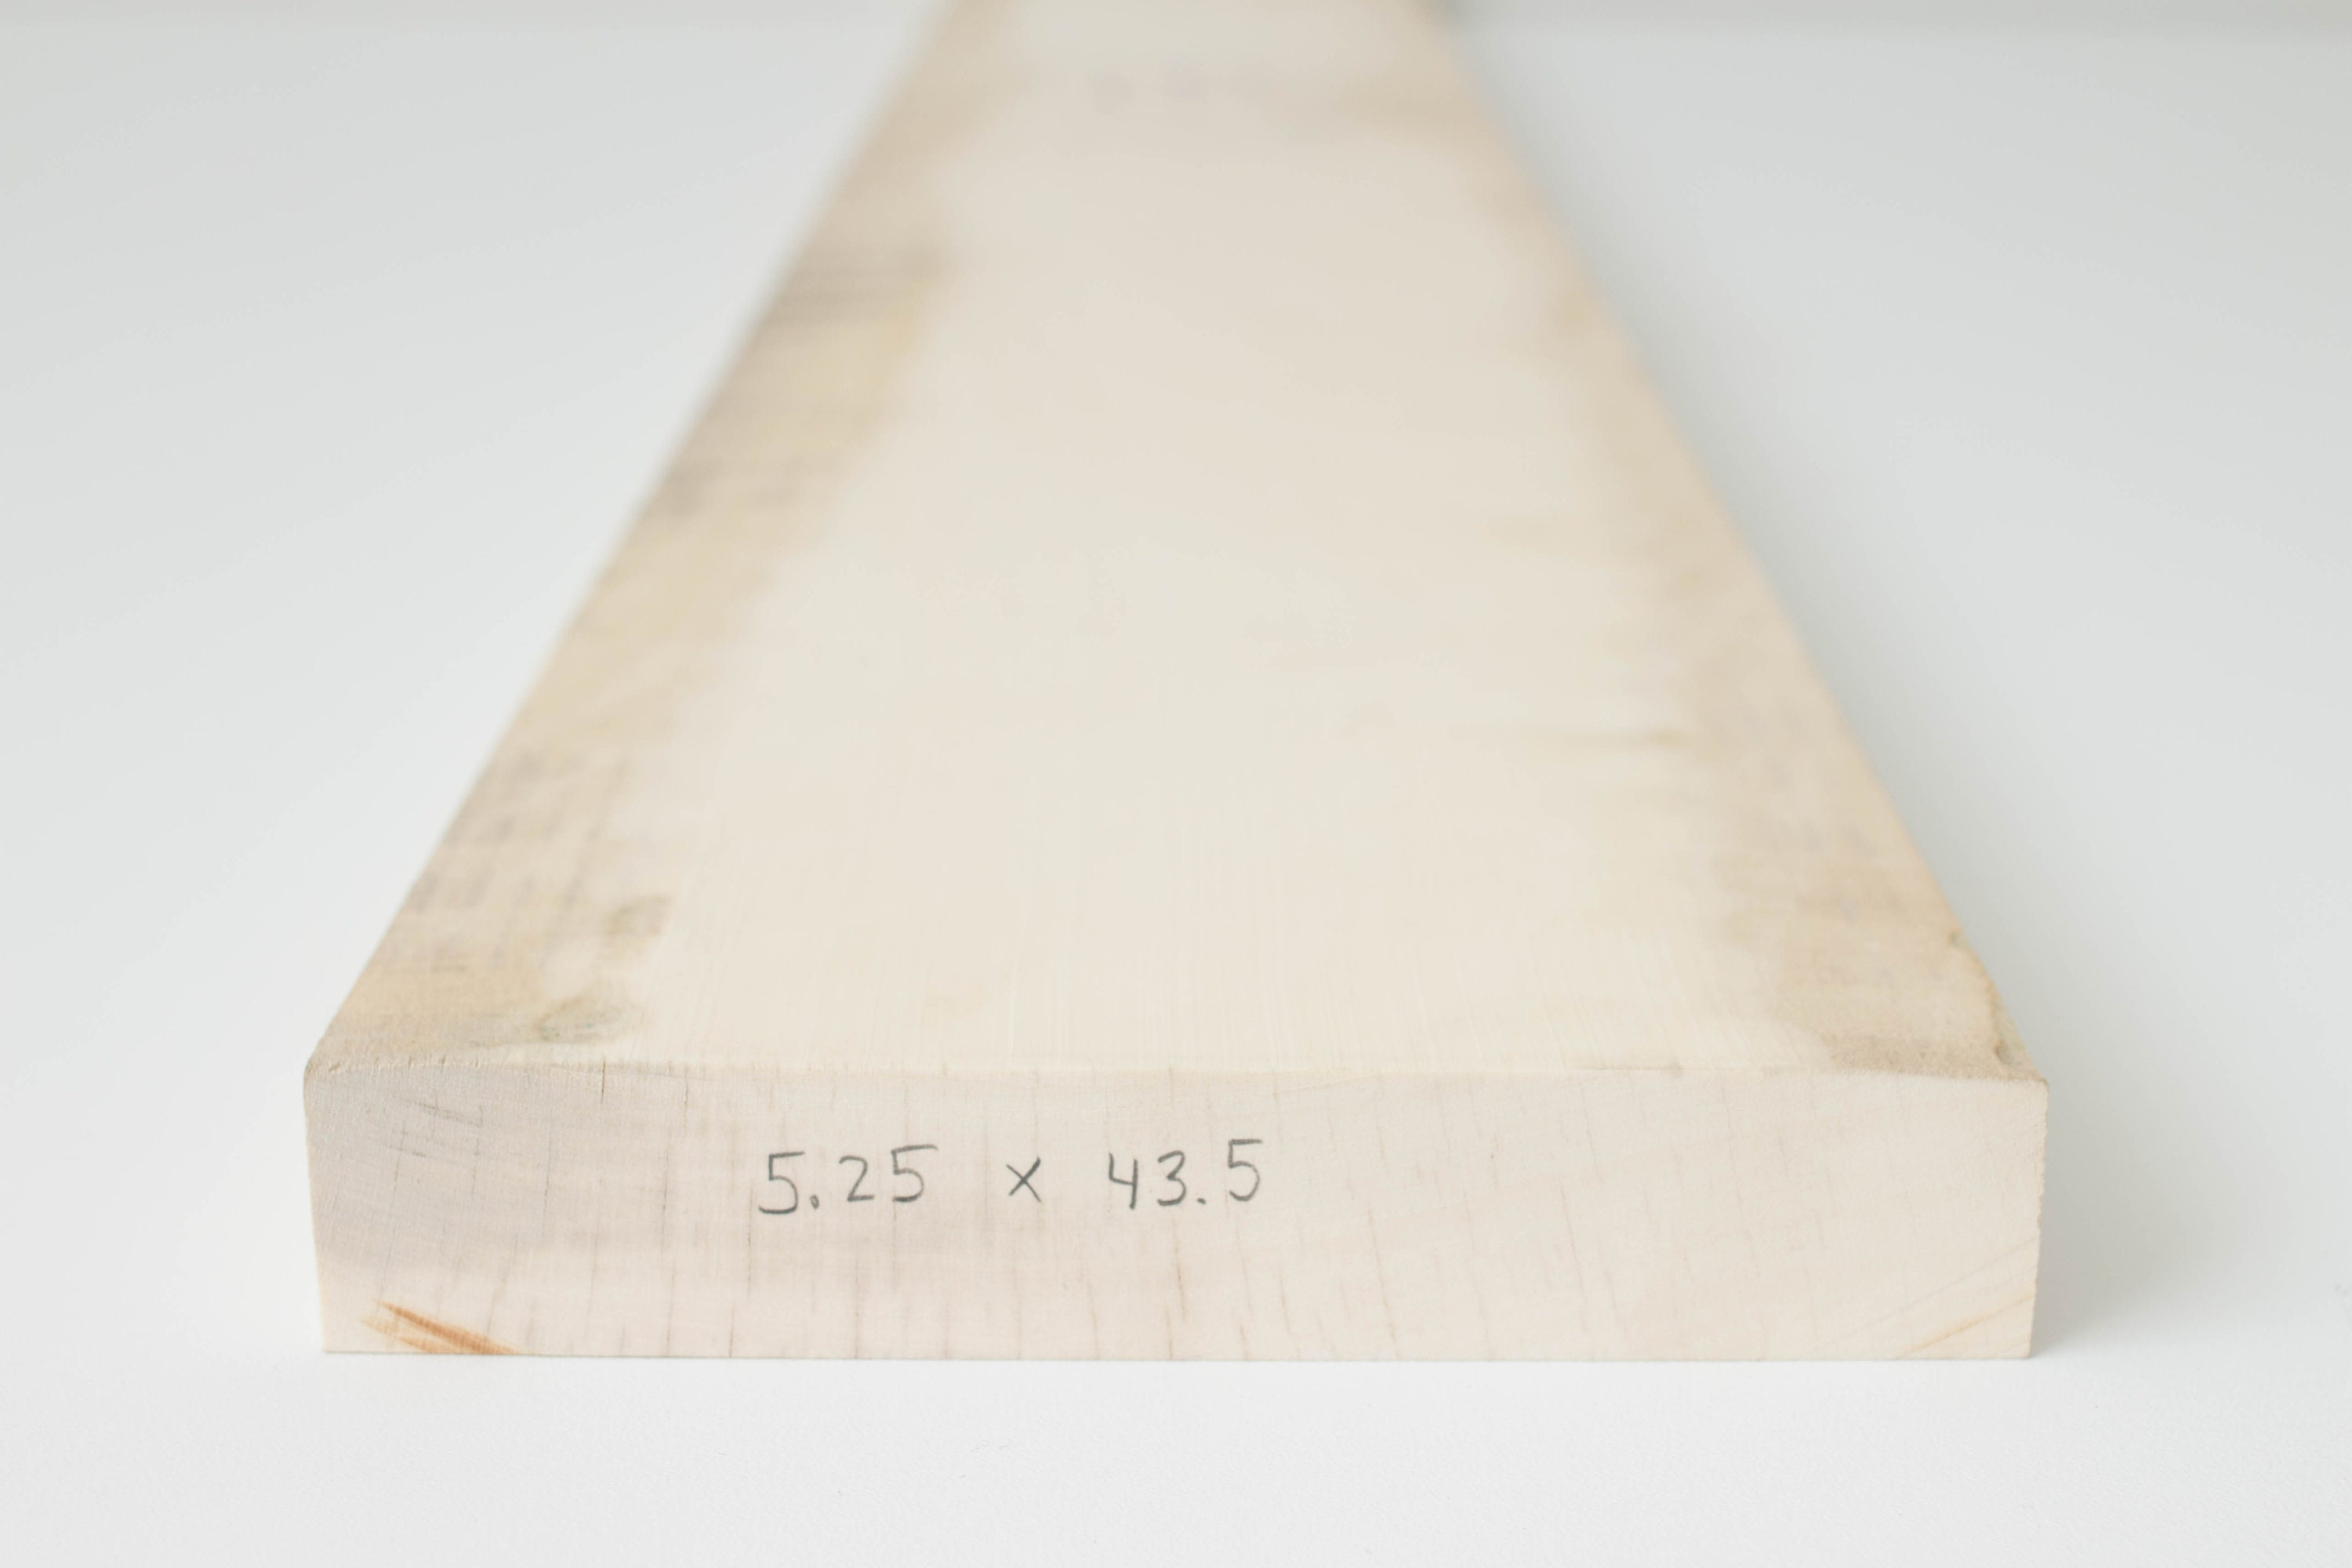 American Holly Lumber, Premium Grade White Solid Wood Planks